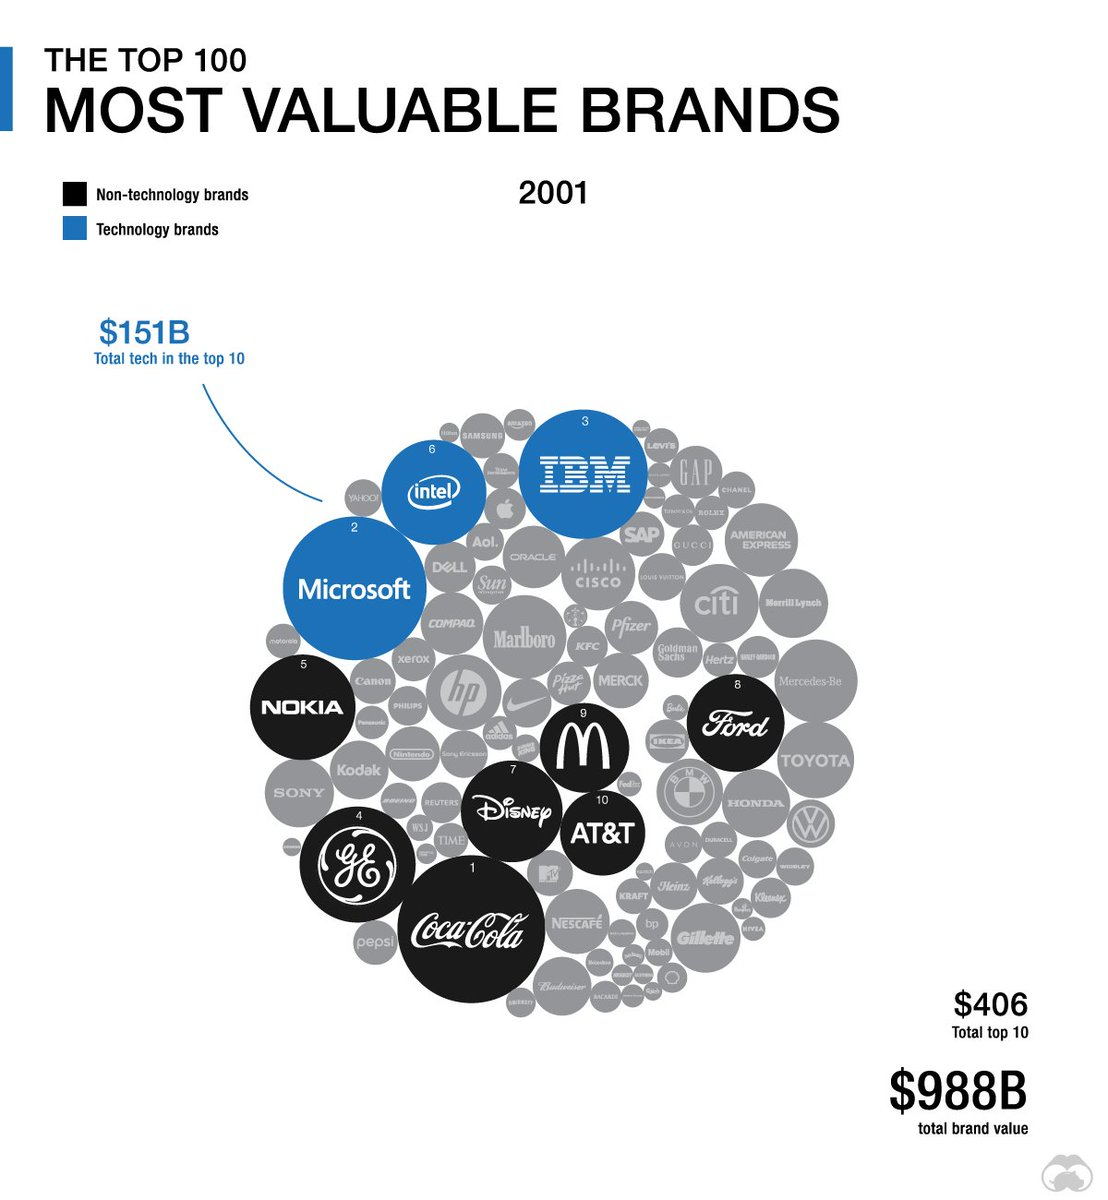 An animation of the most valuable brands show the #DigitalTransformation impact in business https://www.visualcapitalist.com/technology-companies-eating-brand/… #Blockchain #IIoT #IoT #AI #DX #ArtificialIntelligence #BigData #Analytics #DataScience #Infographics #MachineLearning #CyberSecurity #Industry40